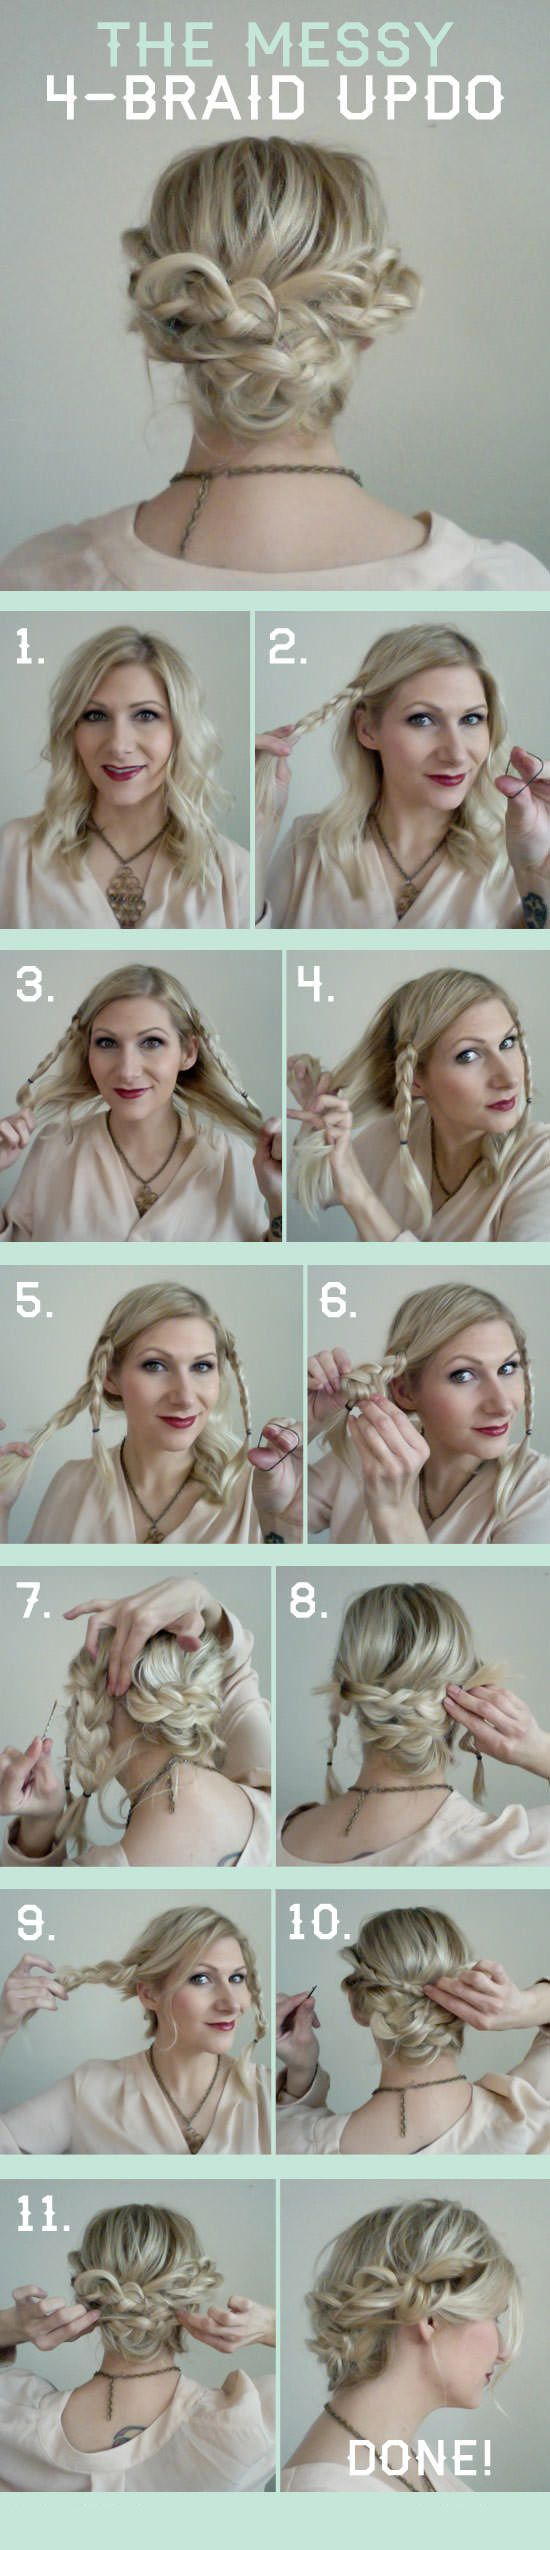 Cute idea hairstyles pinterest updo tutorials and easy